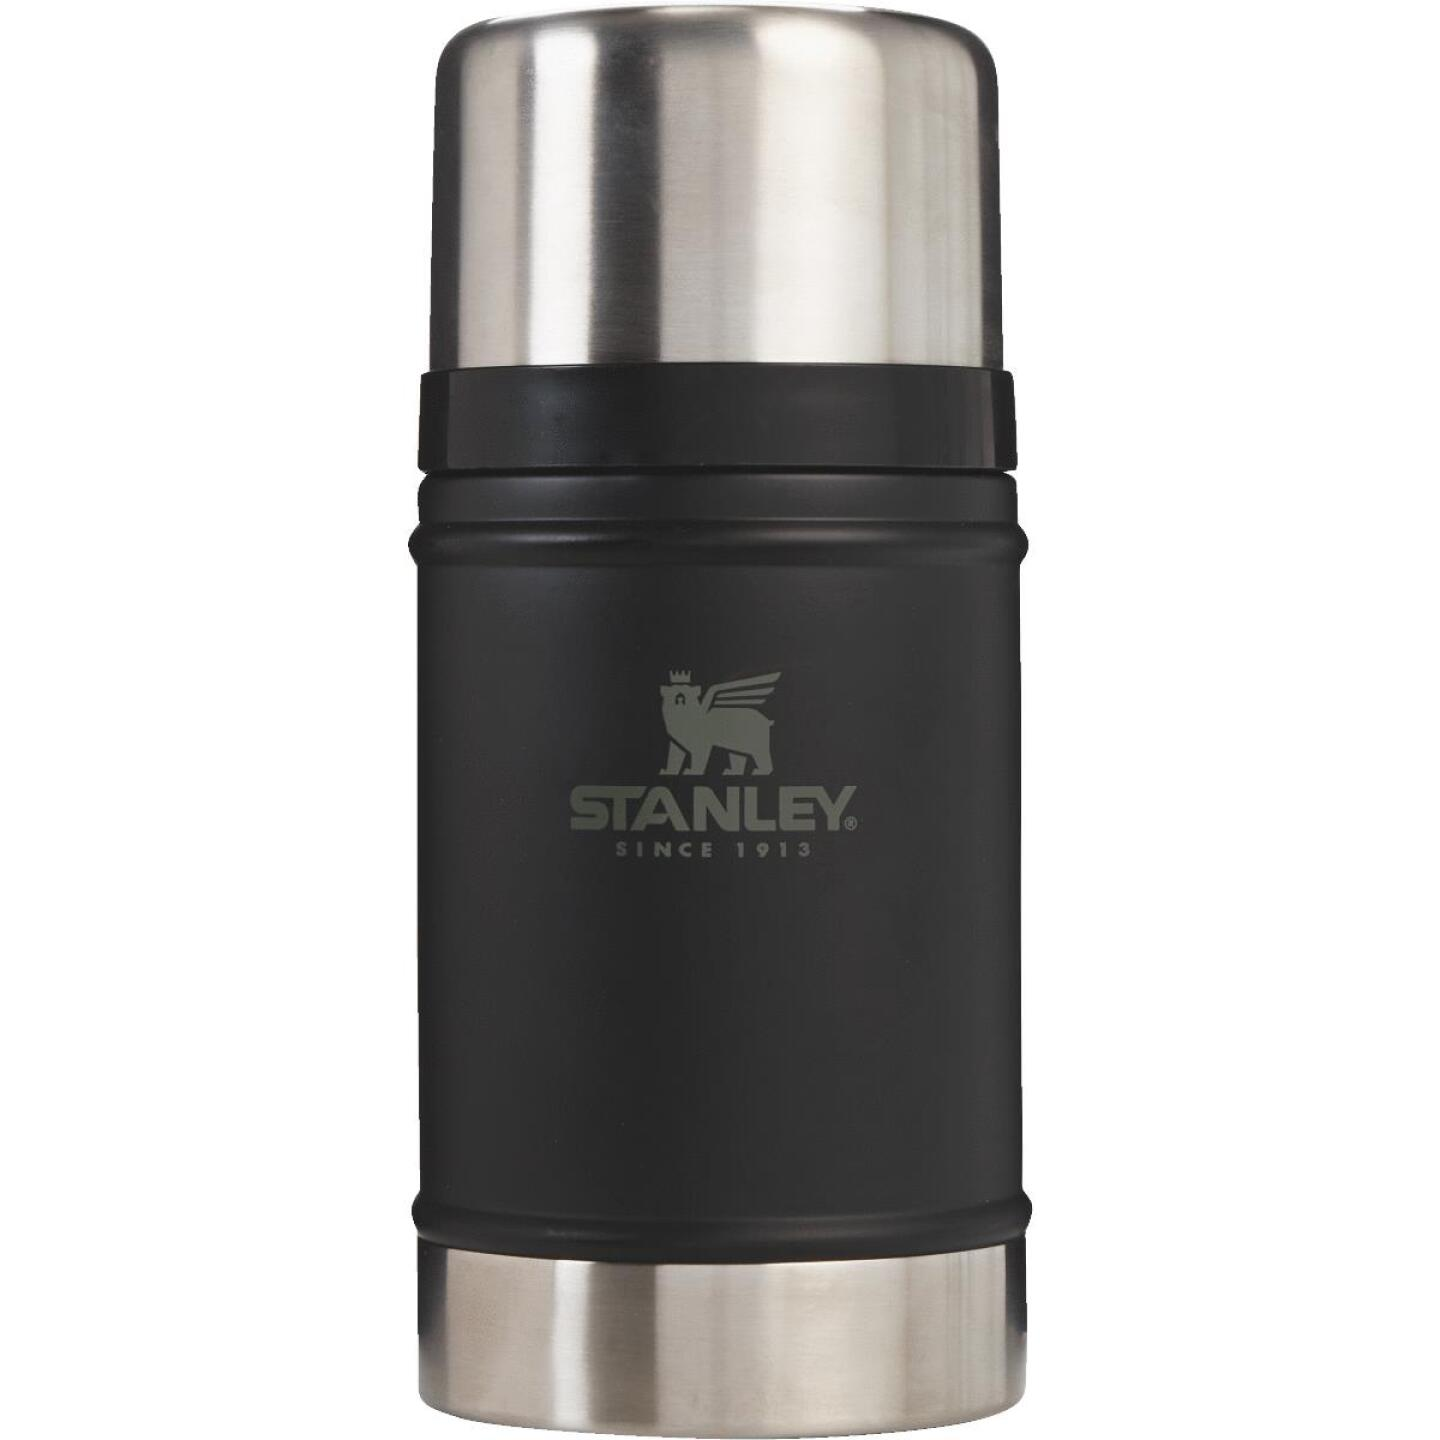 Stanley 24 Oz. Black Stainless Steel Thermal Food Jar Mug Image 1